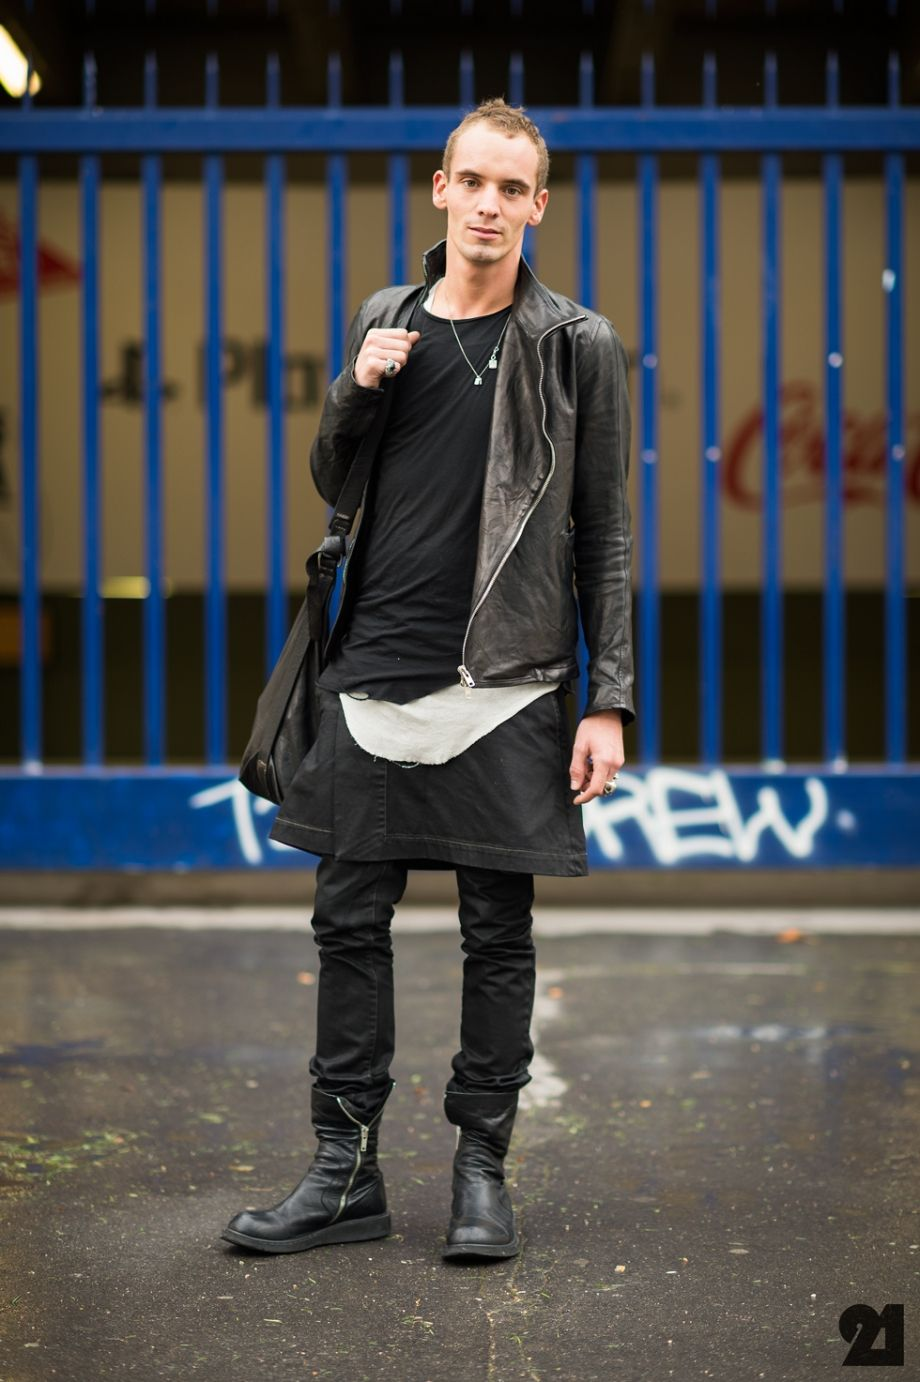 Man-Wearing-All-Black-PFW | Wear Darkness | Pinterest | Men wear ...